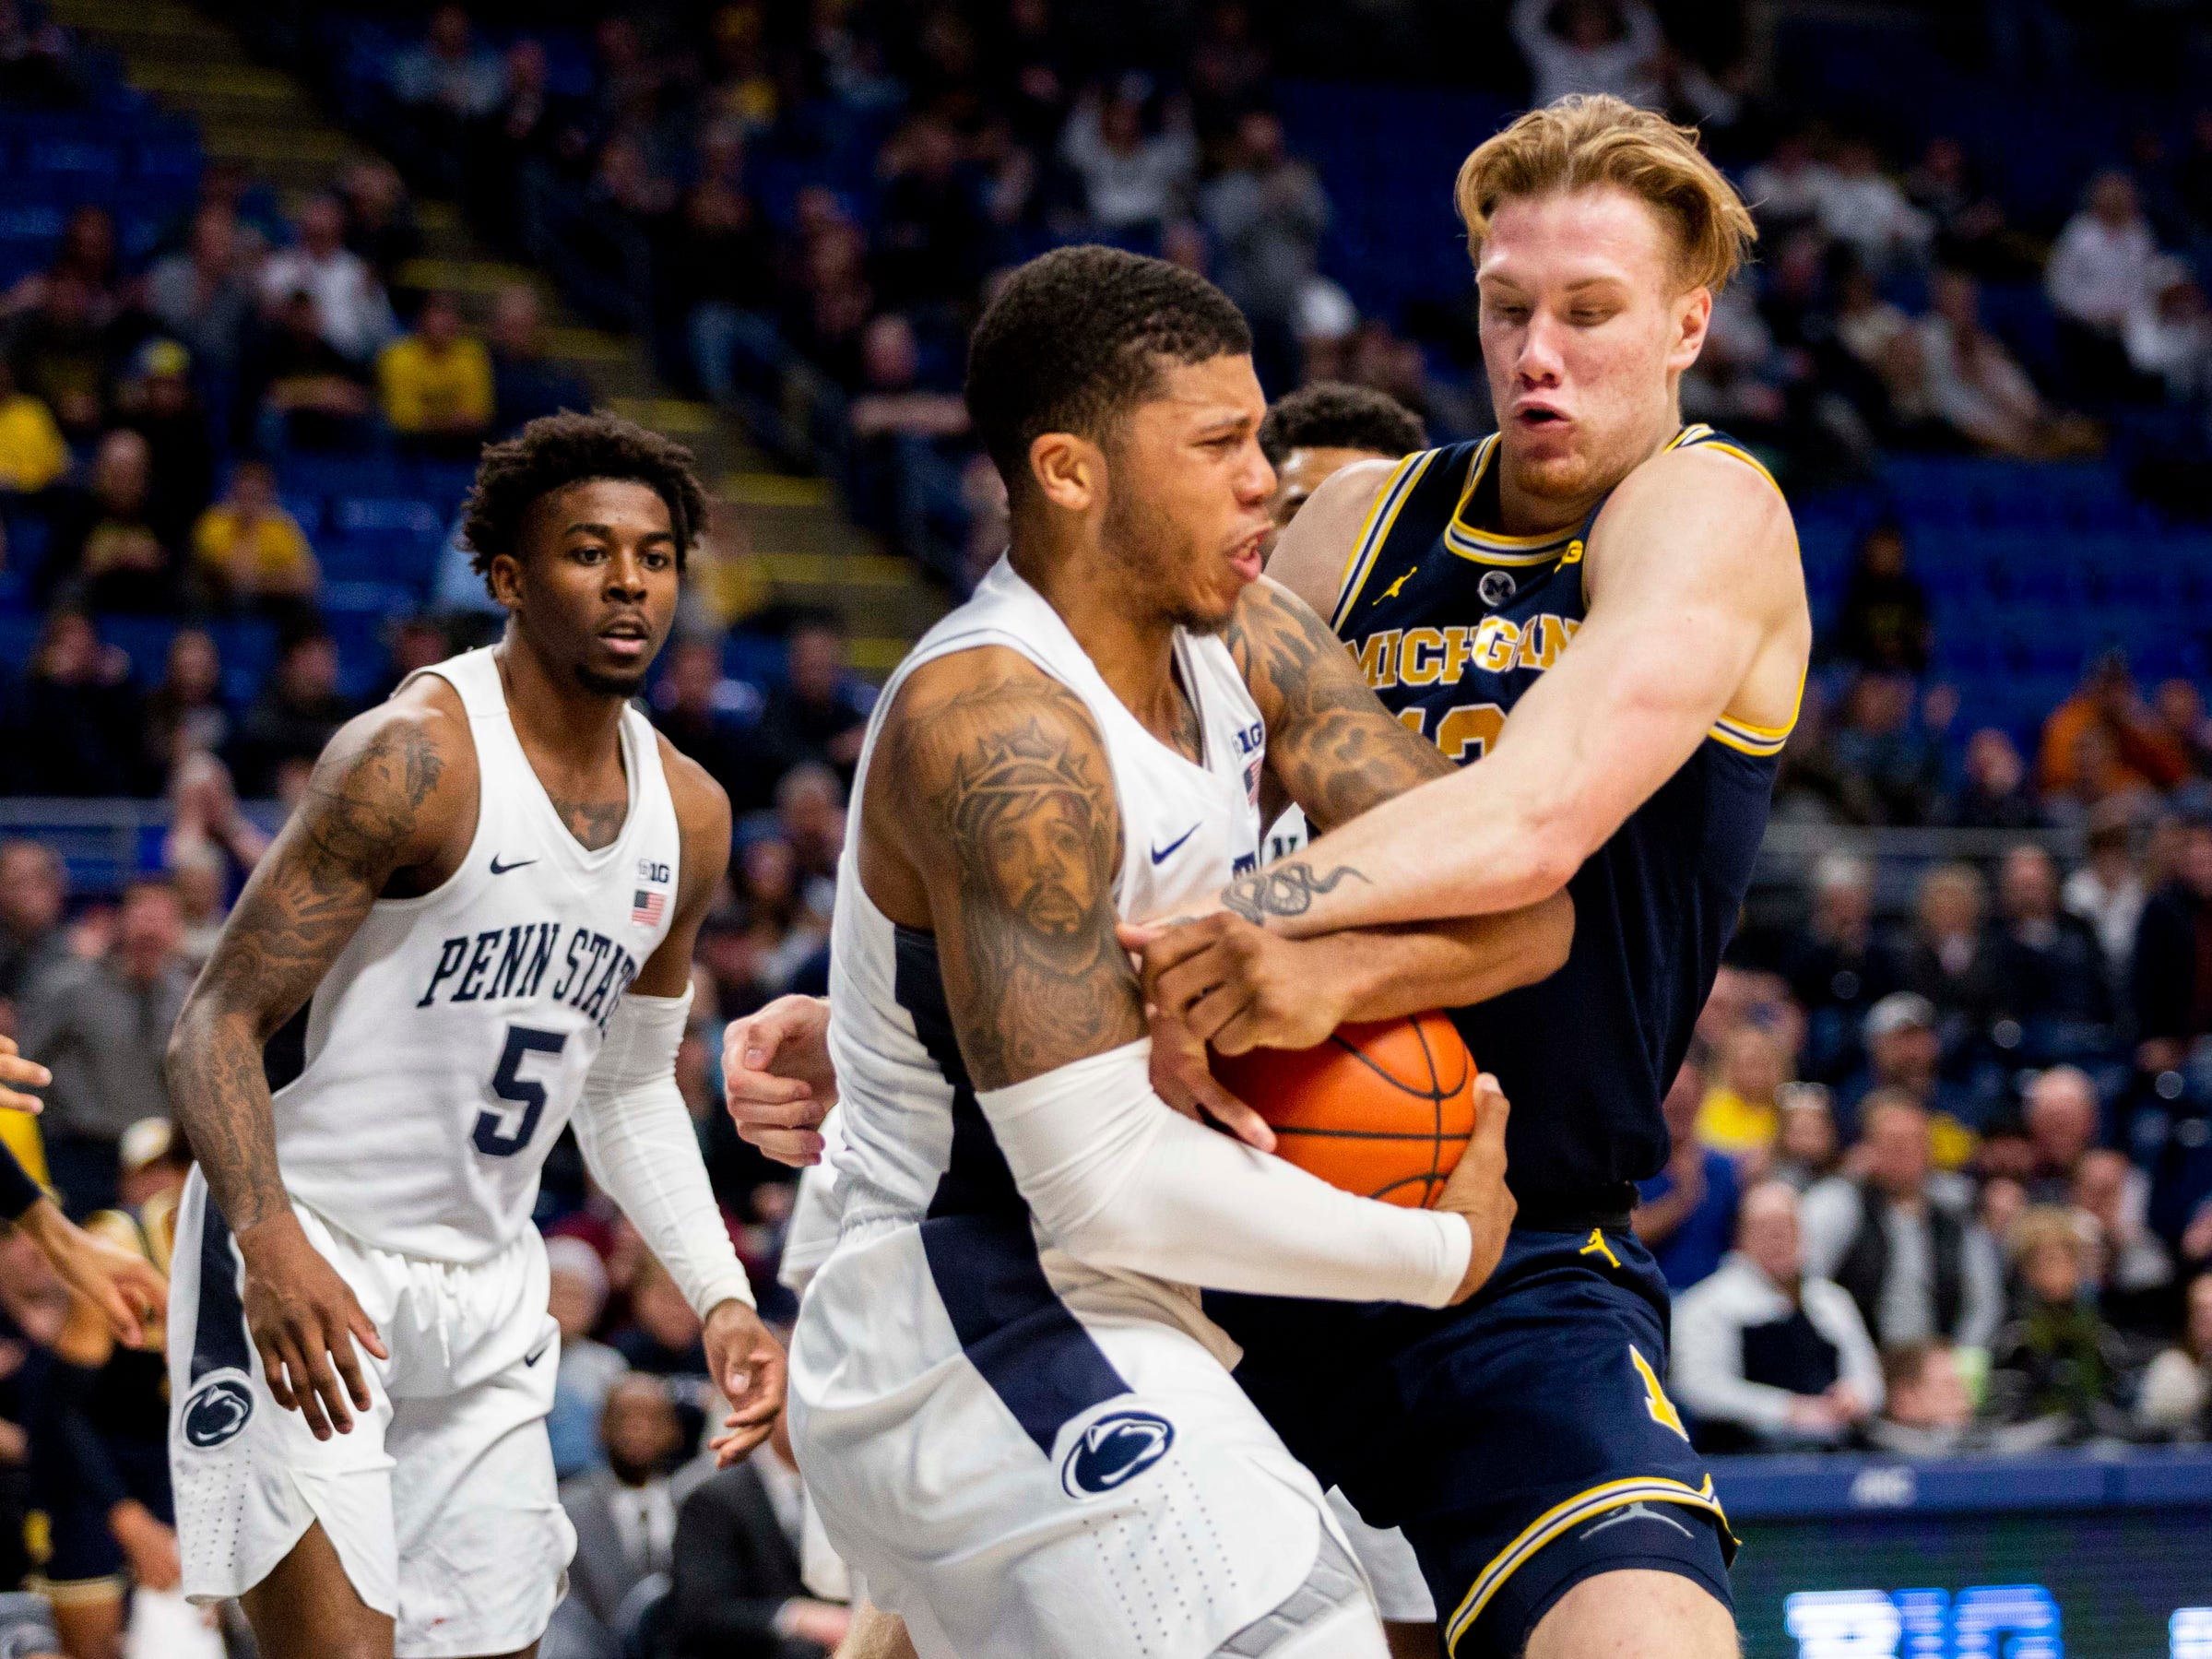 Michigan forward Ignas Brazdeikis battles for a rebound with Penn State guard Myles Dread during the second half Tuesday, Feb. 12, 2019, in State College, Pa.